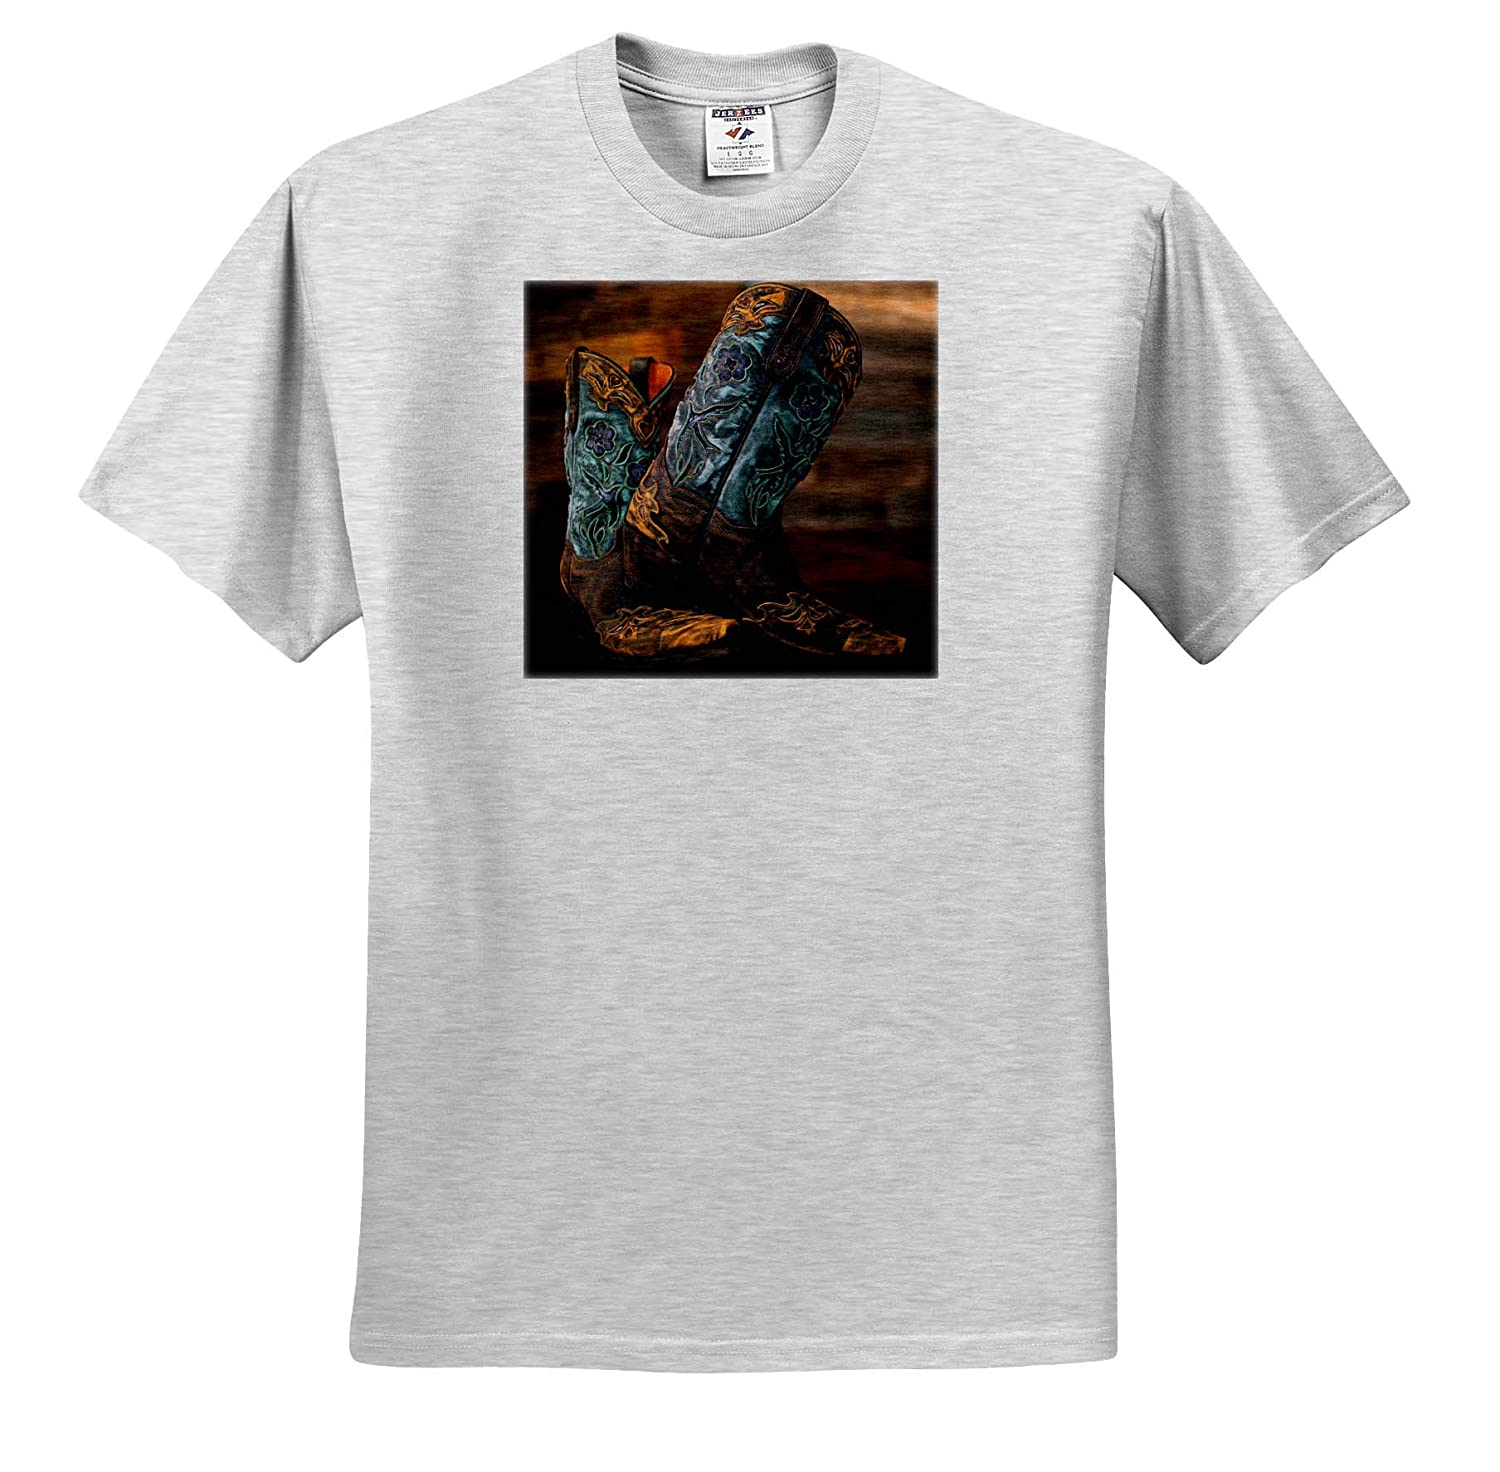 - T-Shirts Photograph of a Pair of Cowgirl Boots Against a Rustic Wood Wall Fashion 3dRose Stamp City